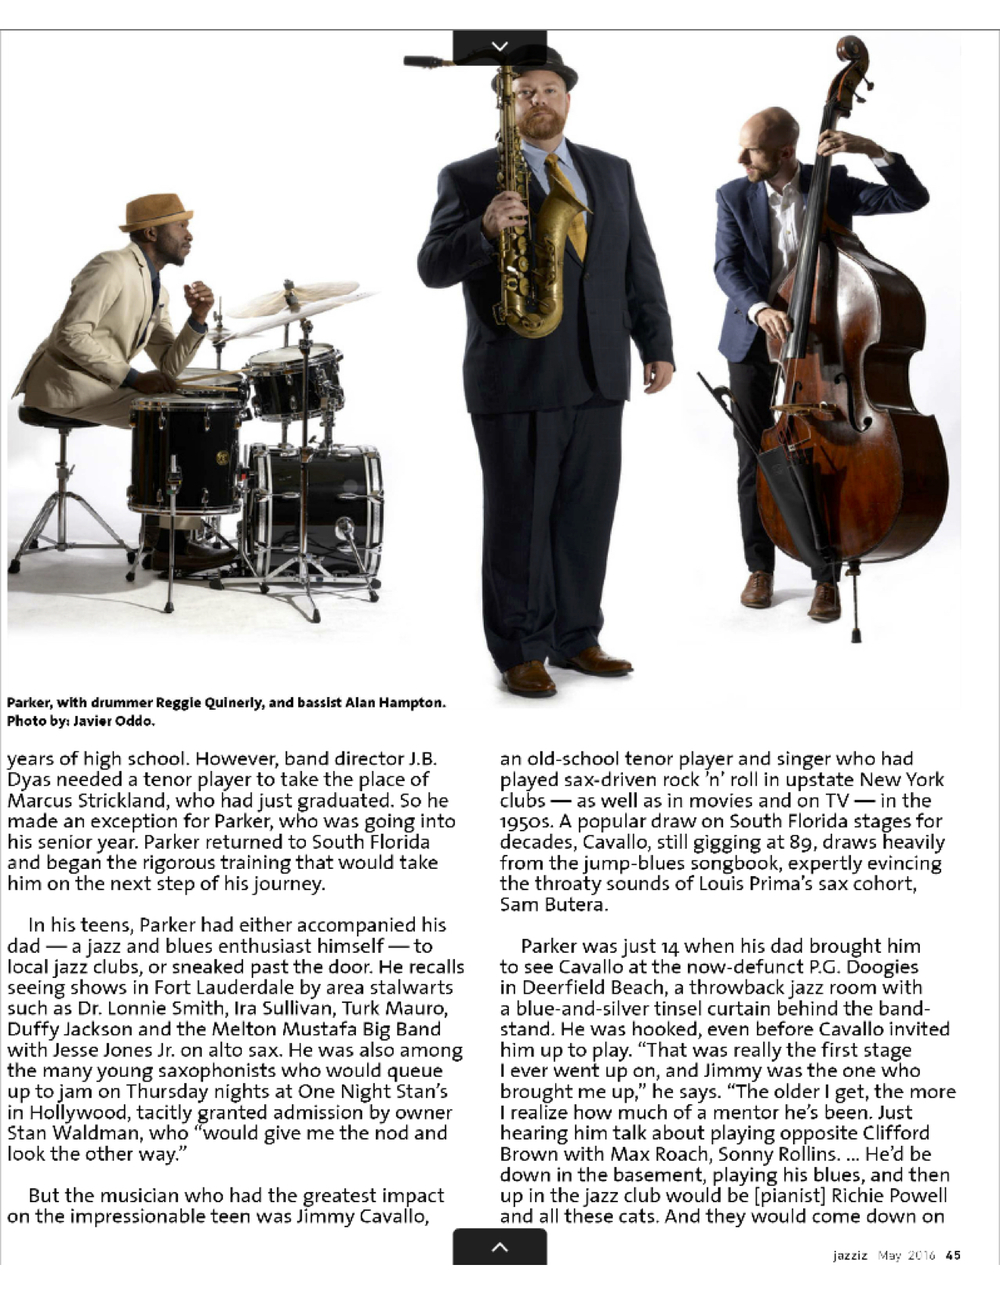 JAZZIZ_May2016_Matt_Parker_Full_Feature_Pg7.jpg